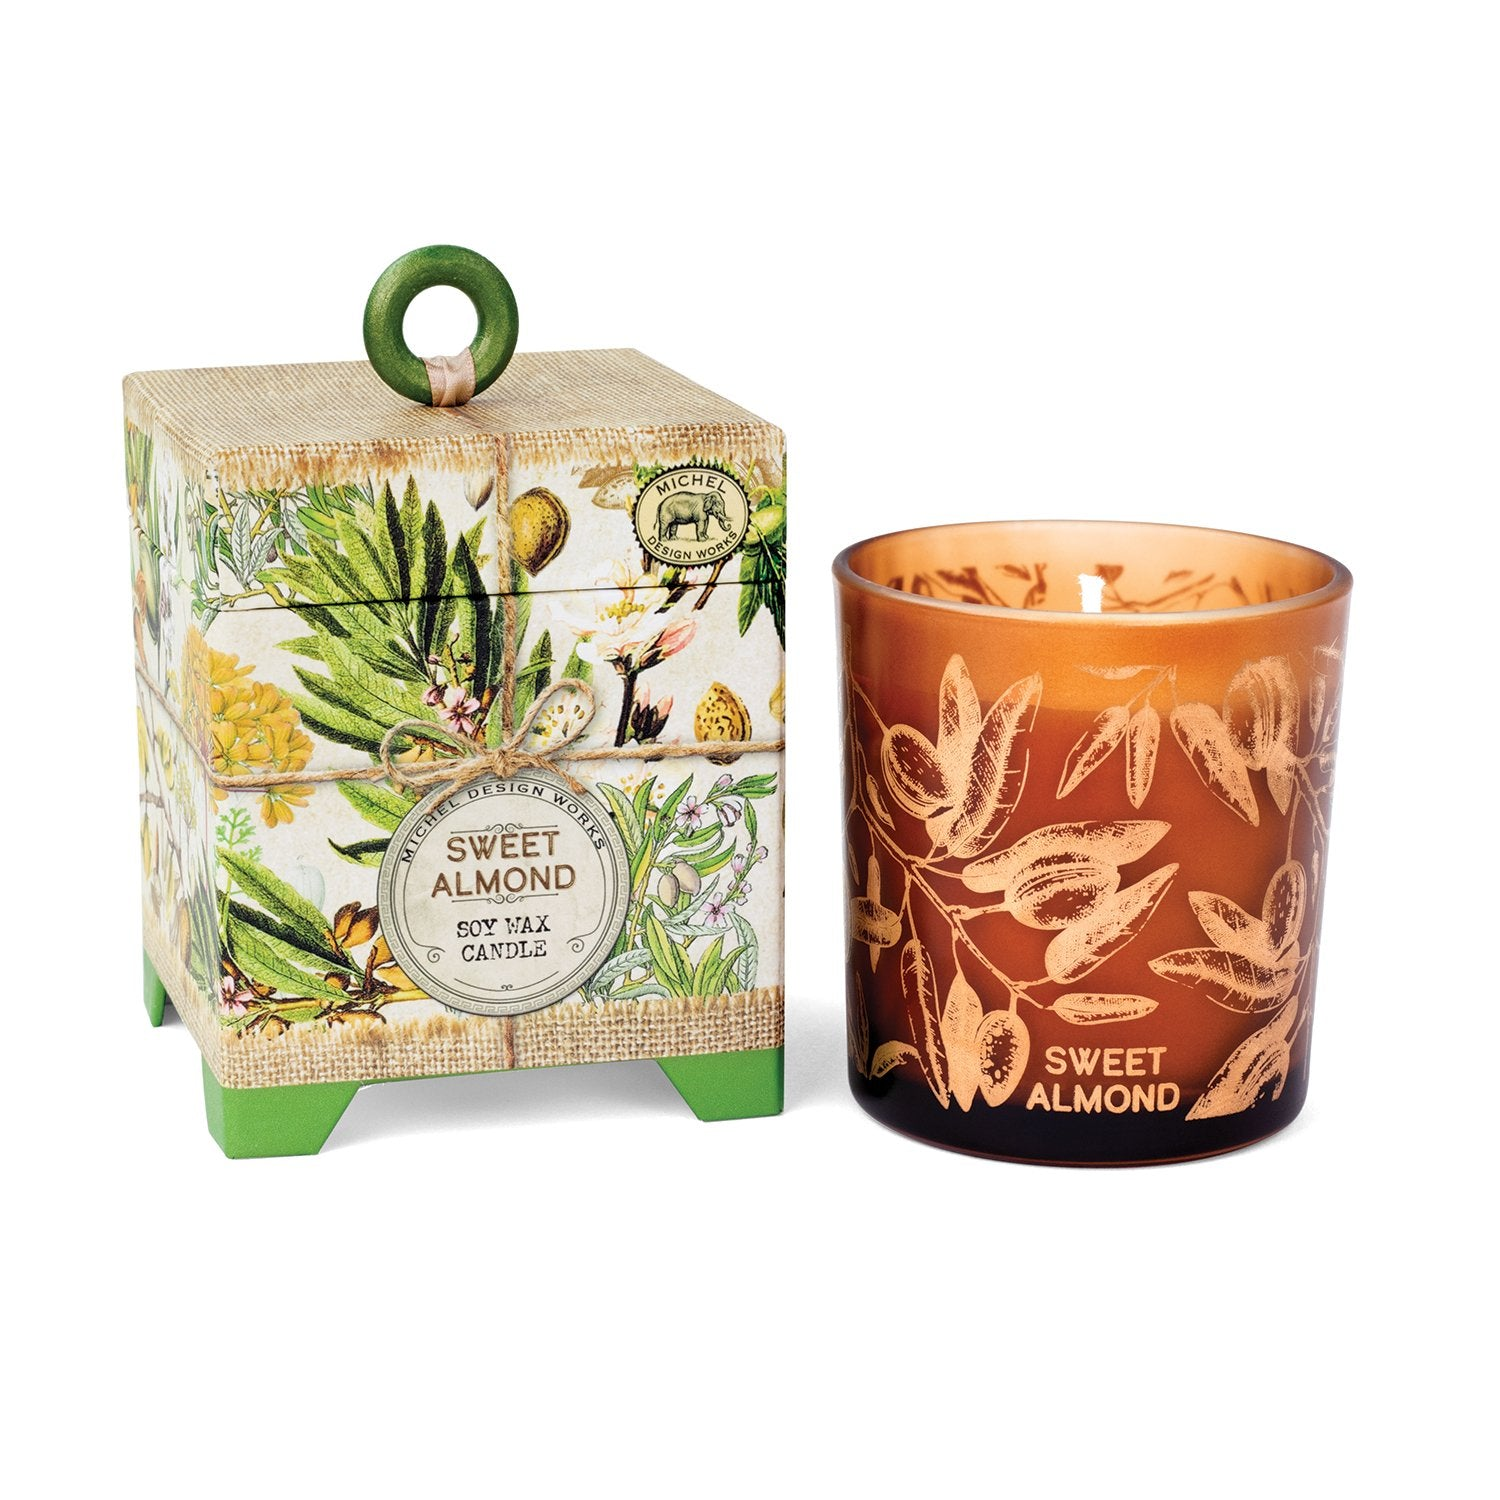 Sweet Almond 6.5 oz. Soy Wax Candle